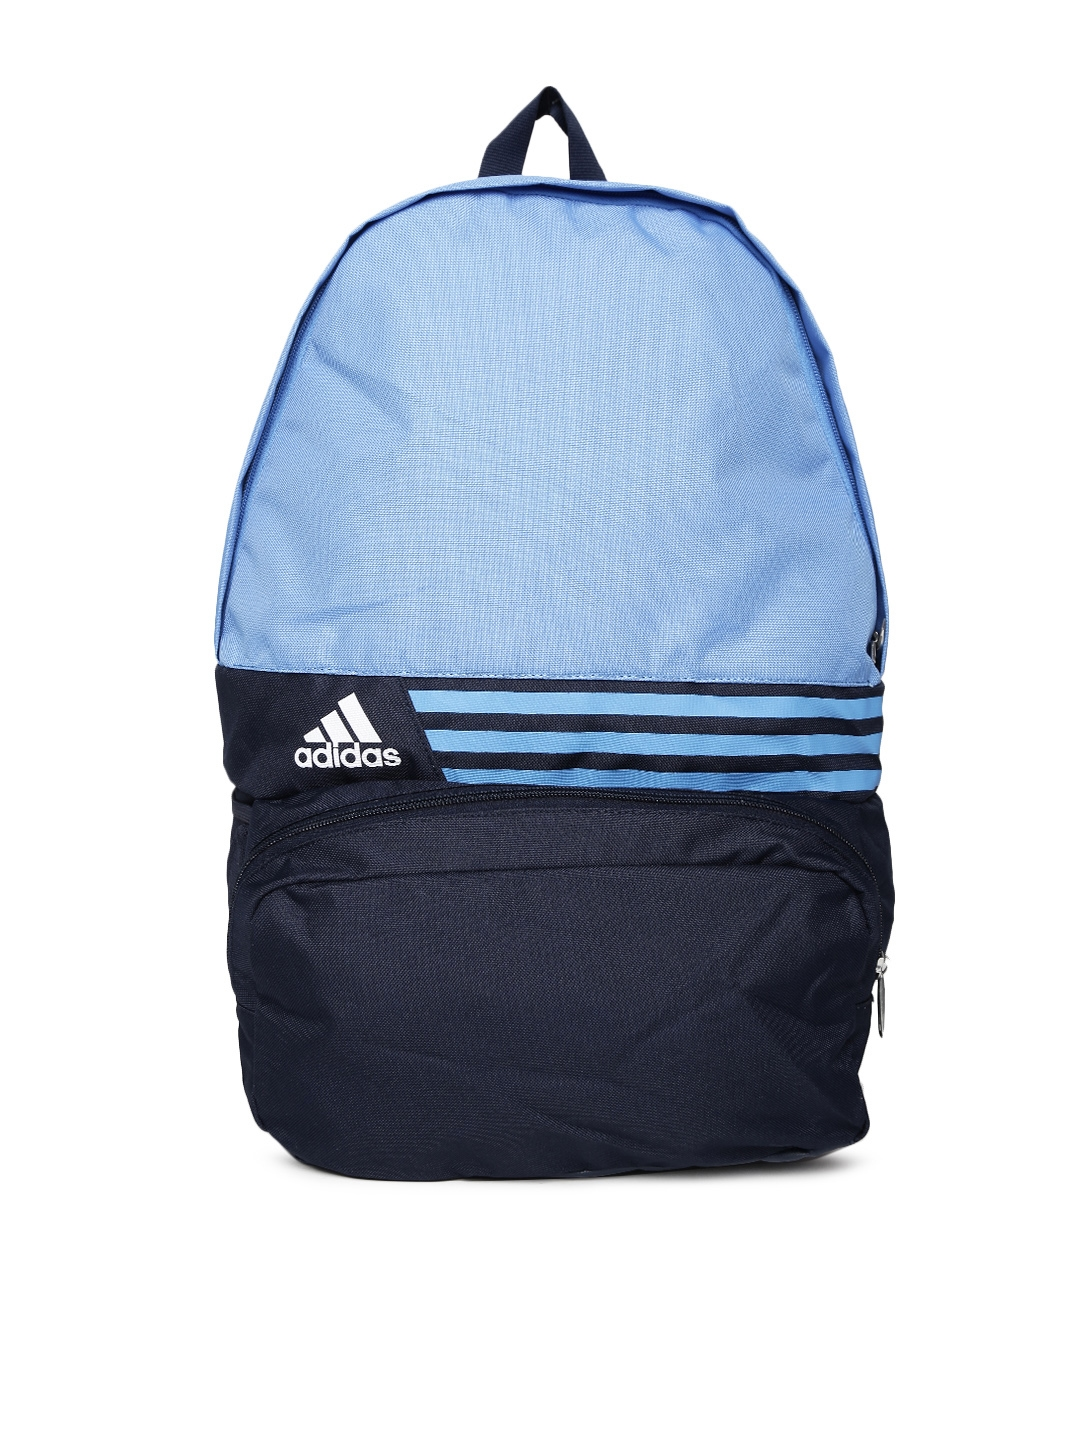 0797fe77f1 Buy ADIDAS Unisex Navy   Blue DER BP L 3S Backpack - Backpacks for Unisex  751053